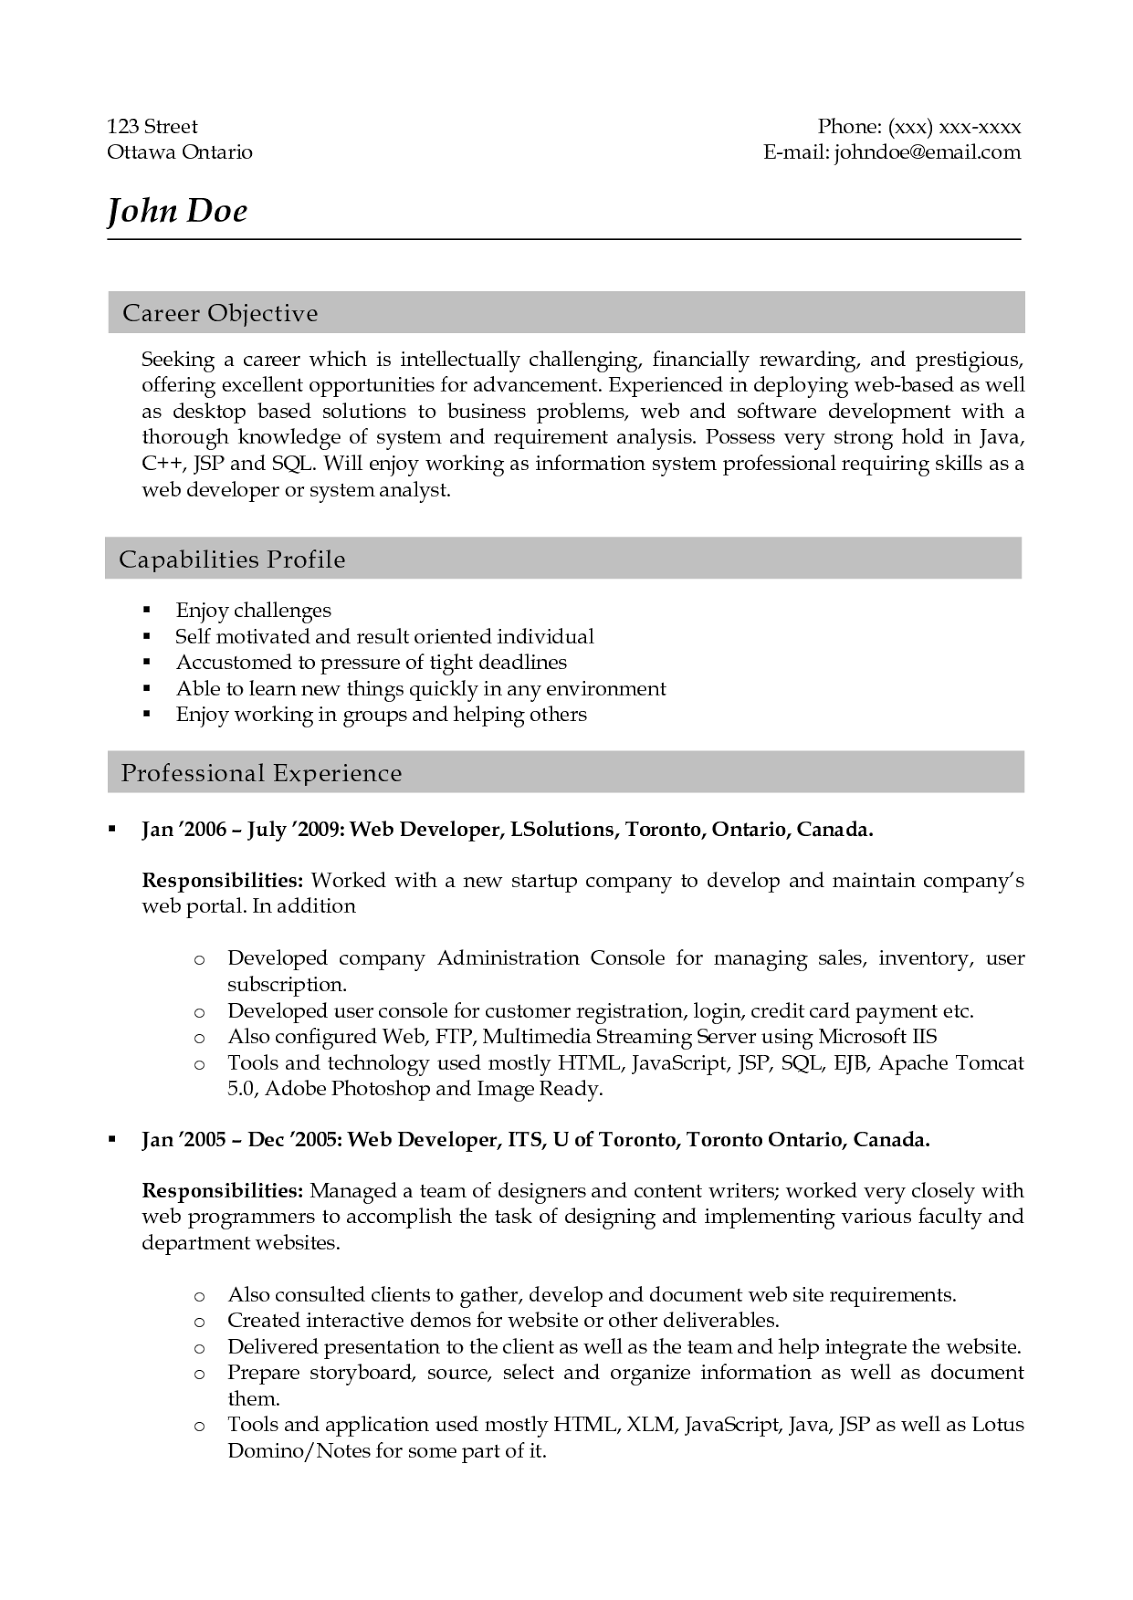 sample canadian resume format resume template free creative templates for mac contemporary breathtaking functional resume template - Free Canadian Resume Templates